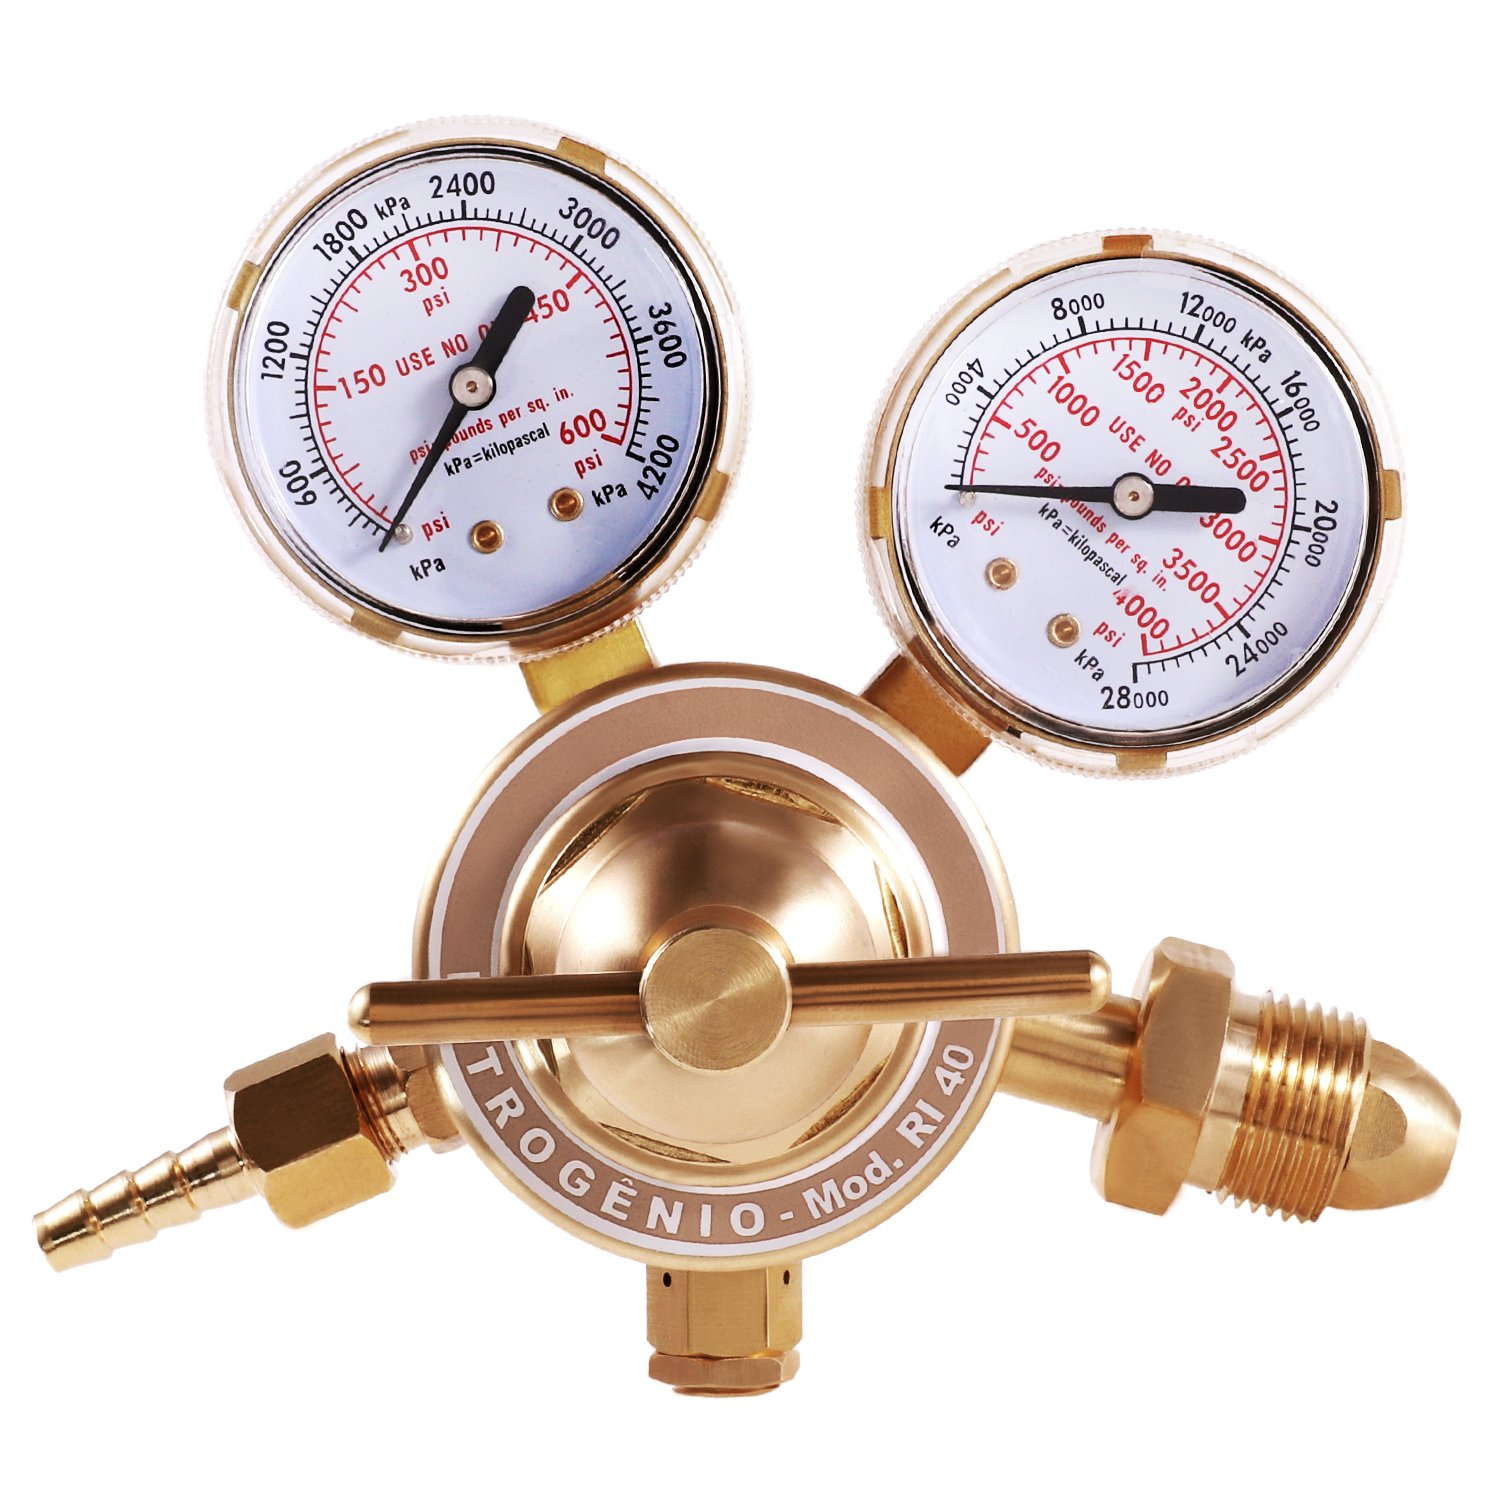 Mofeez Nitrogen Regulator with 0-400 PSI Delivery Pressure Equipment Brass Inlet Outlet Connection Gauges Mofee Tool